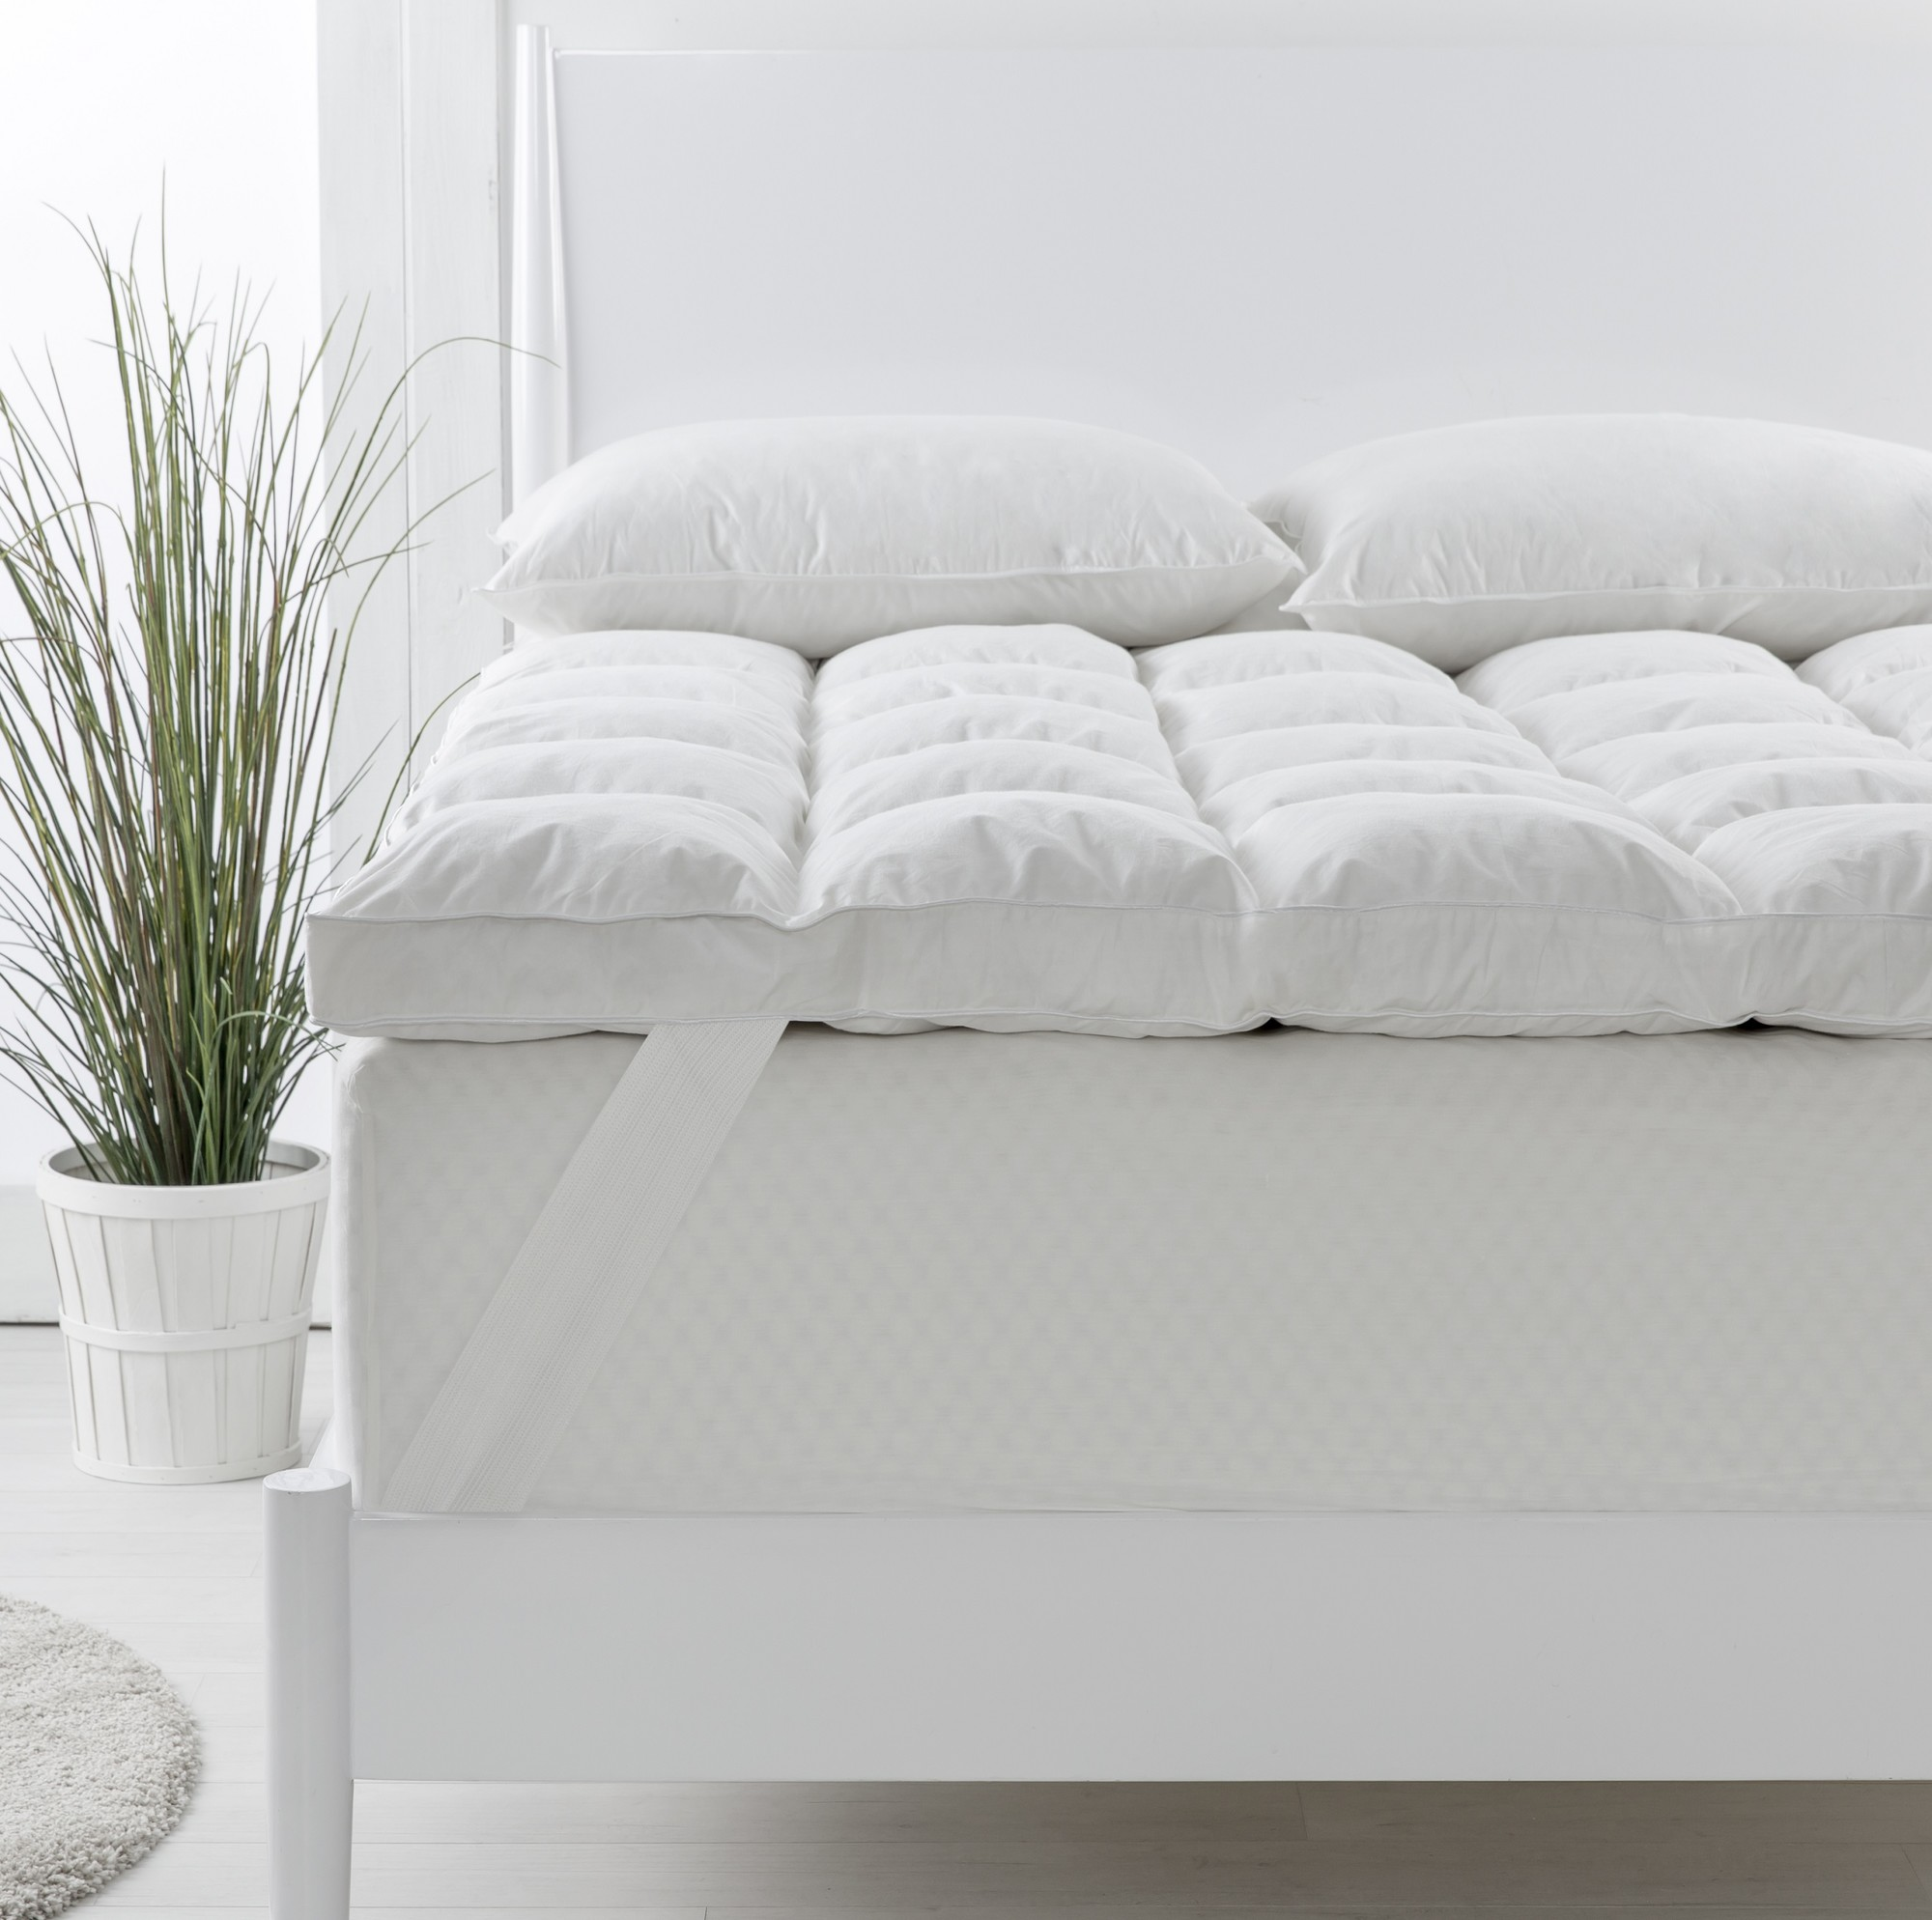 Signs To Look For When Buying An All Organic Mattress